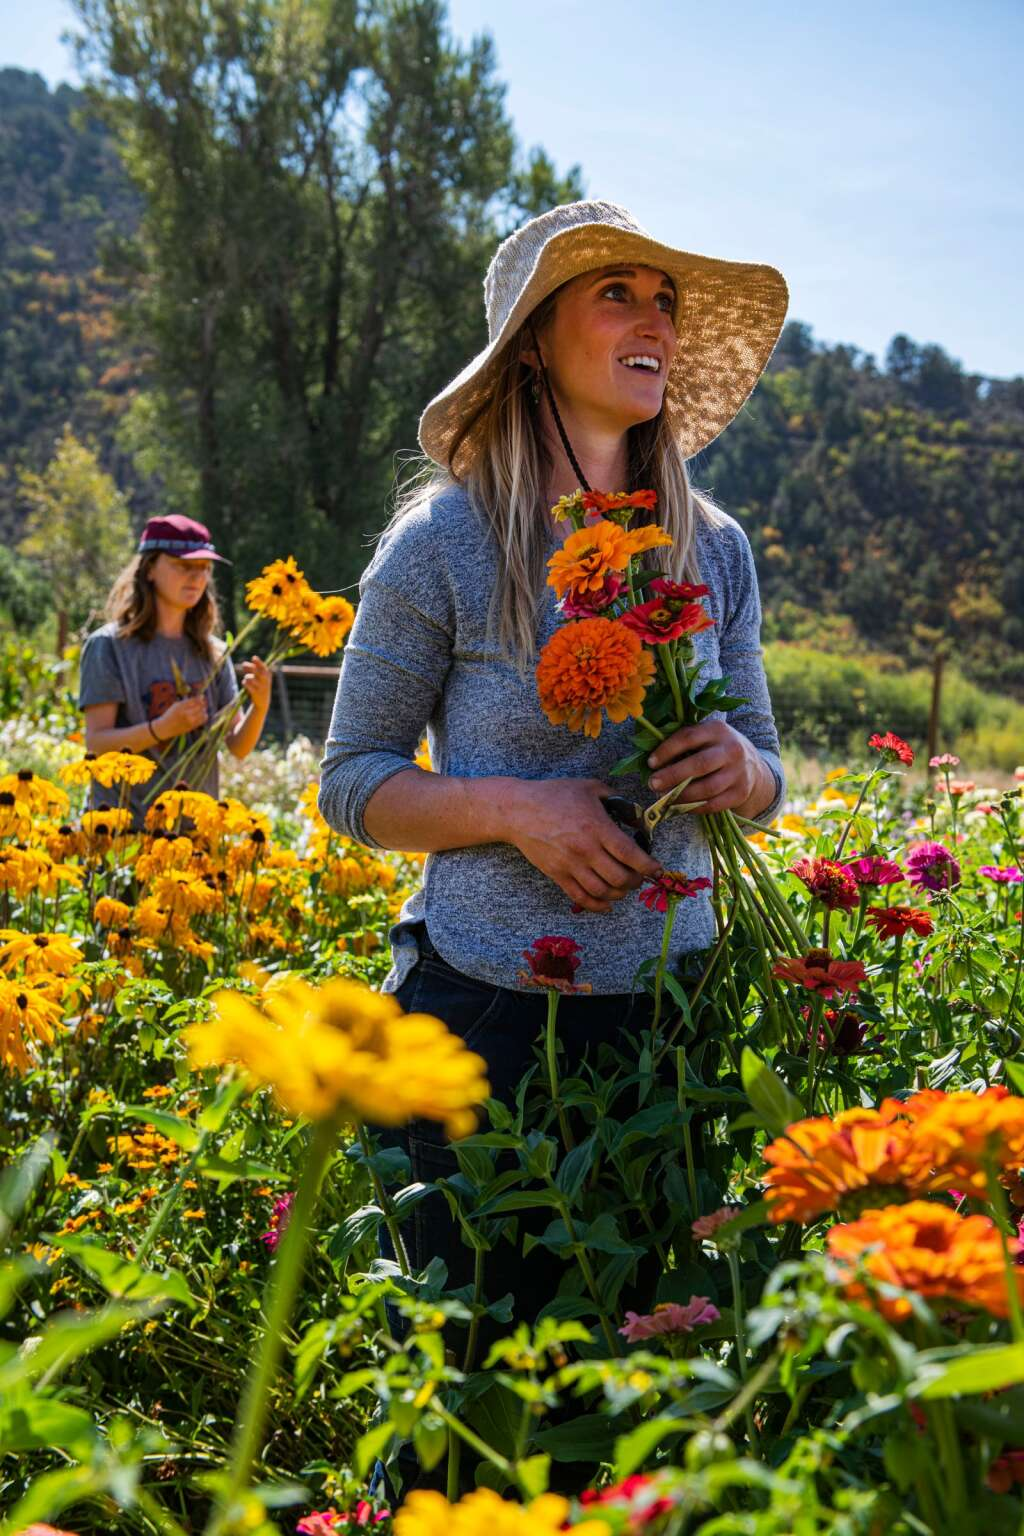 Harper Kaufman, right, and Dara Unger pick flowers in the field at Two Roots Farm in Emma on Friday, Sept. 17, 2021. (Kelsey Brunner/The Aspen Times)